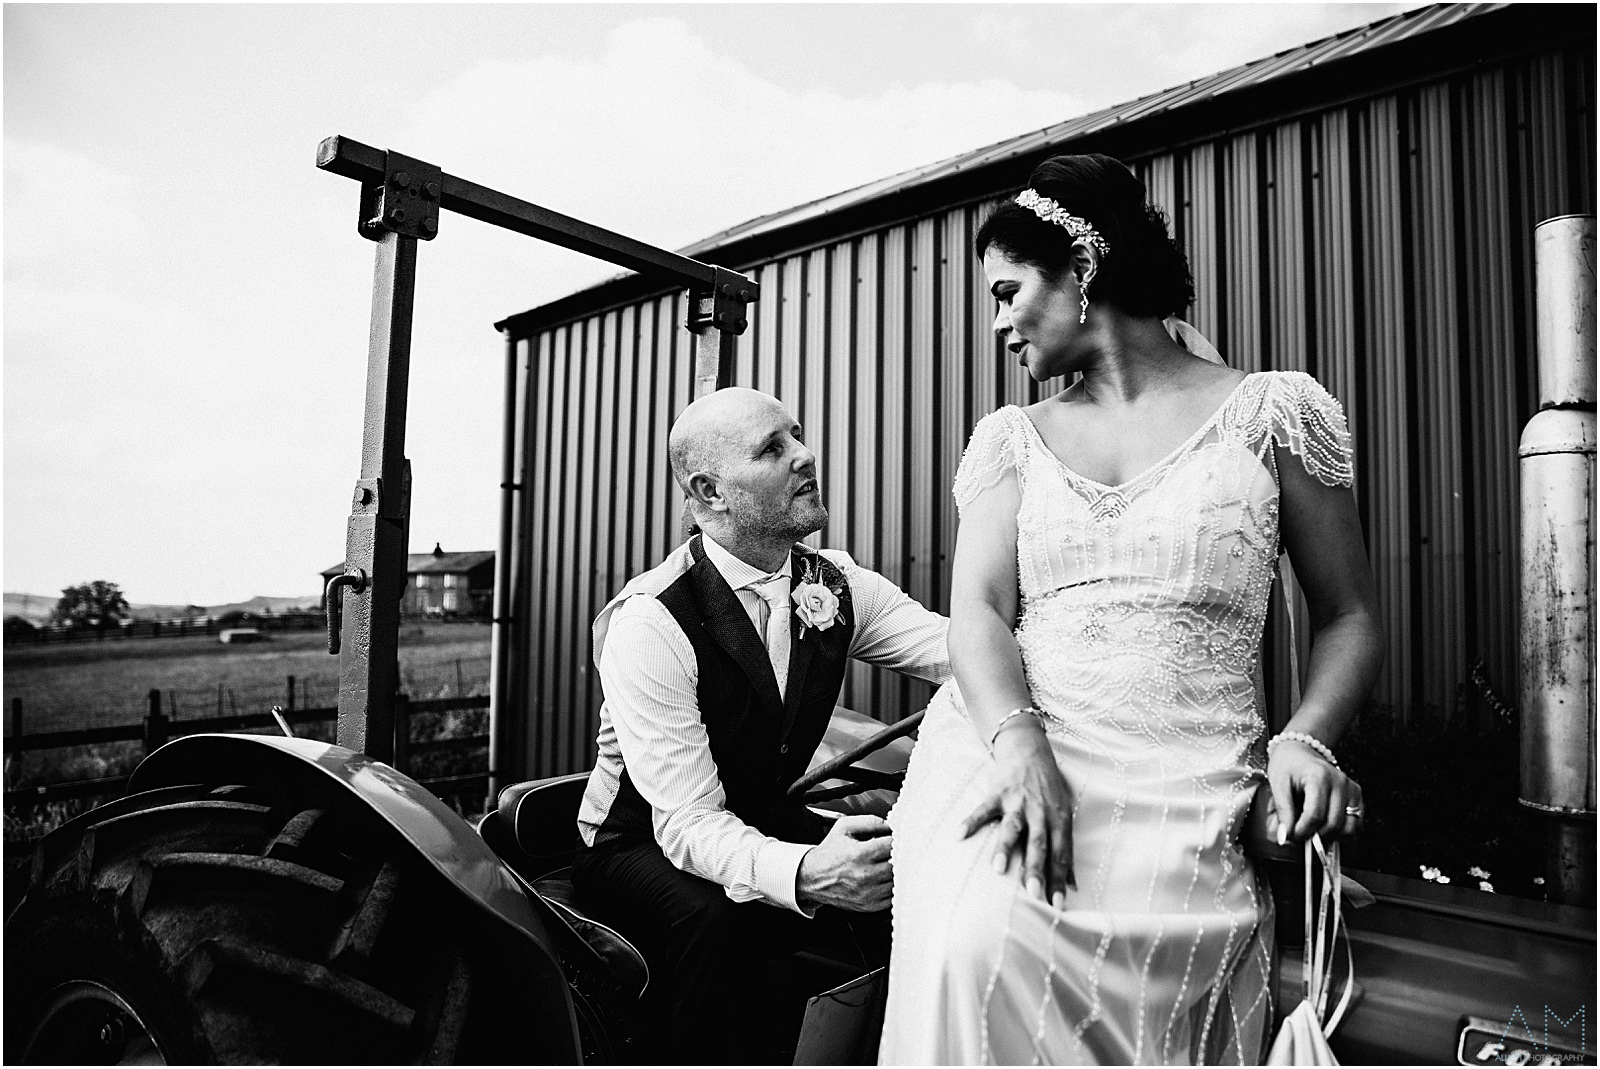 Newly weds sat on the tractor